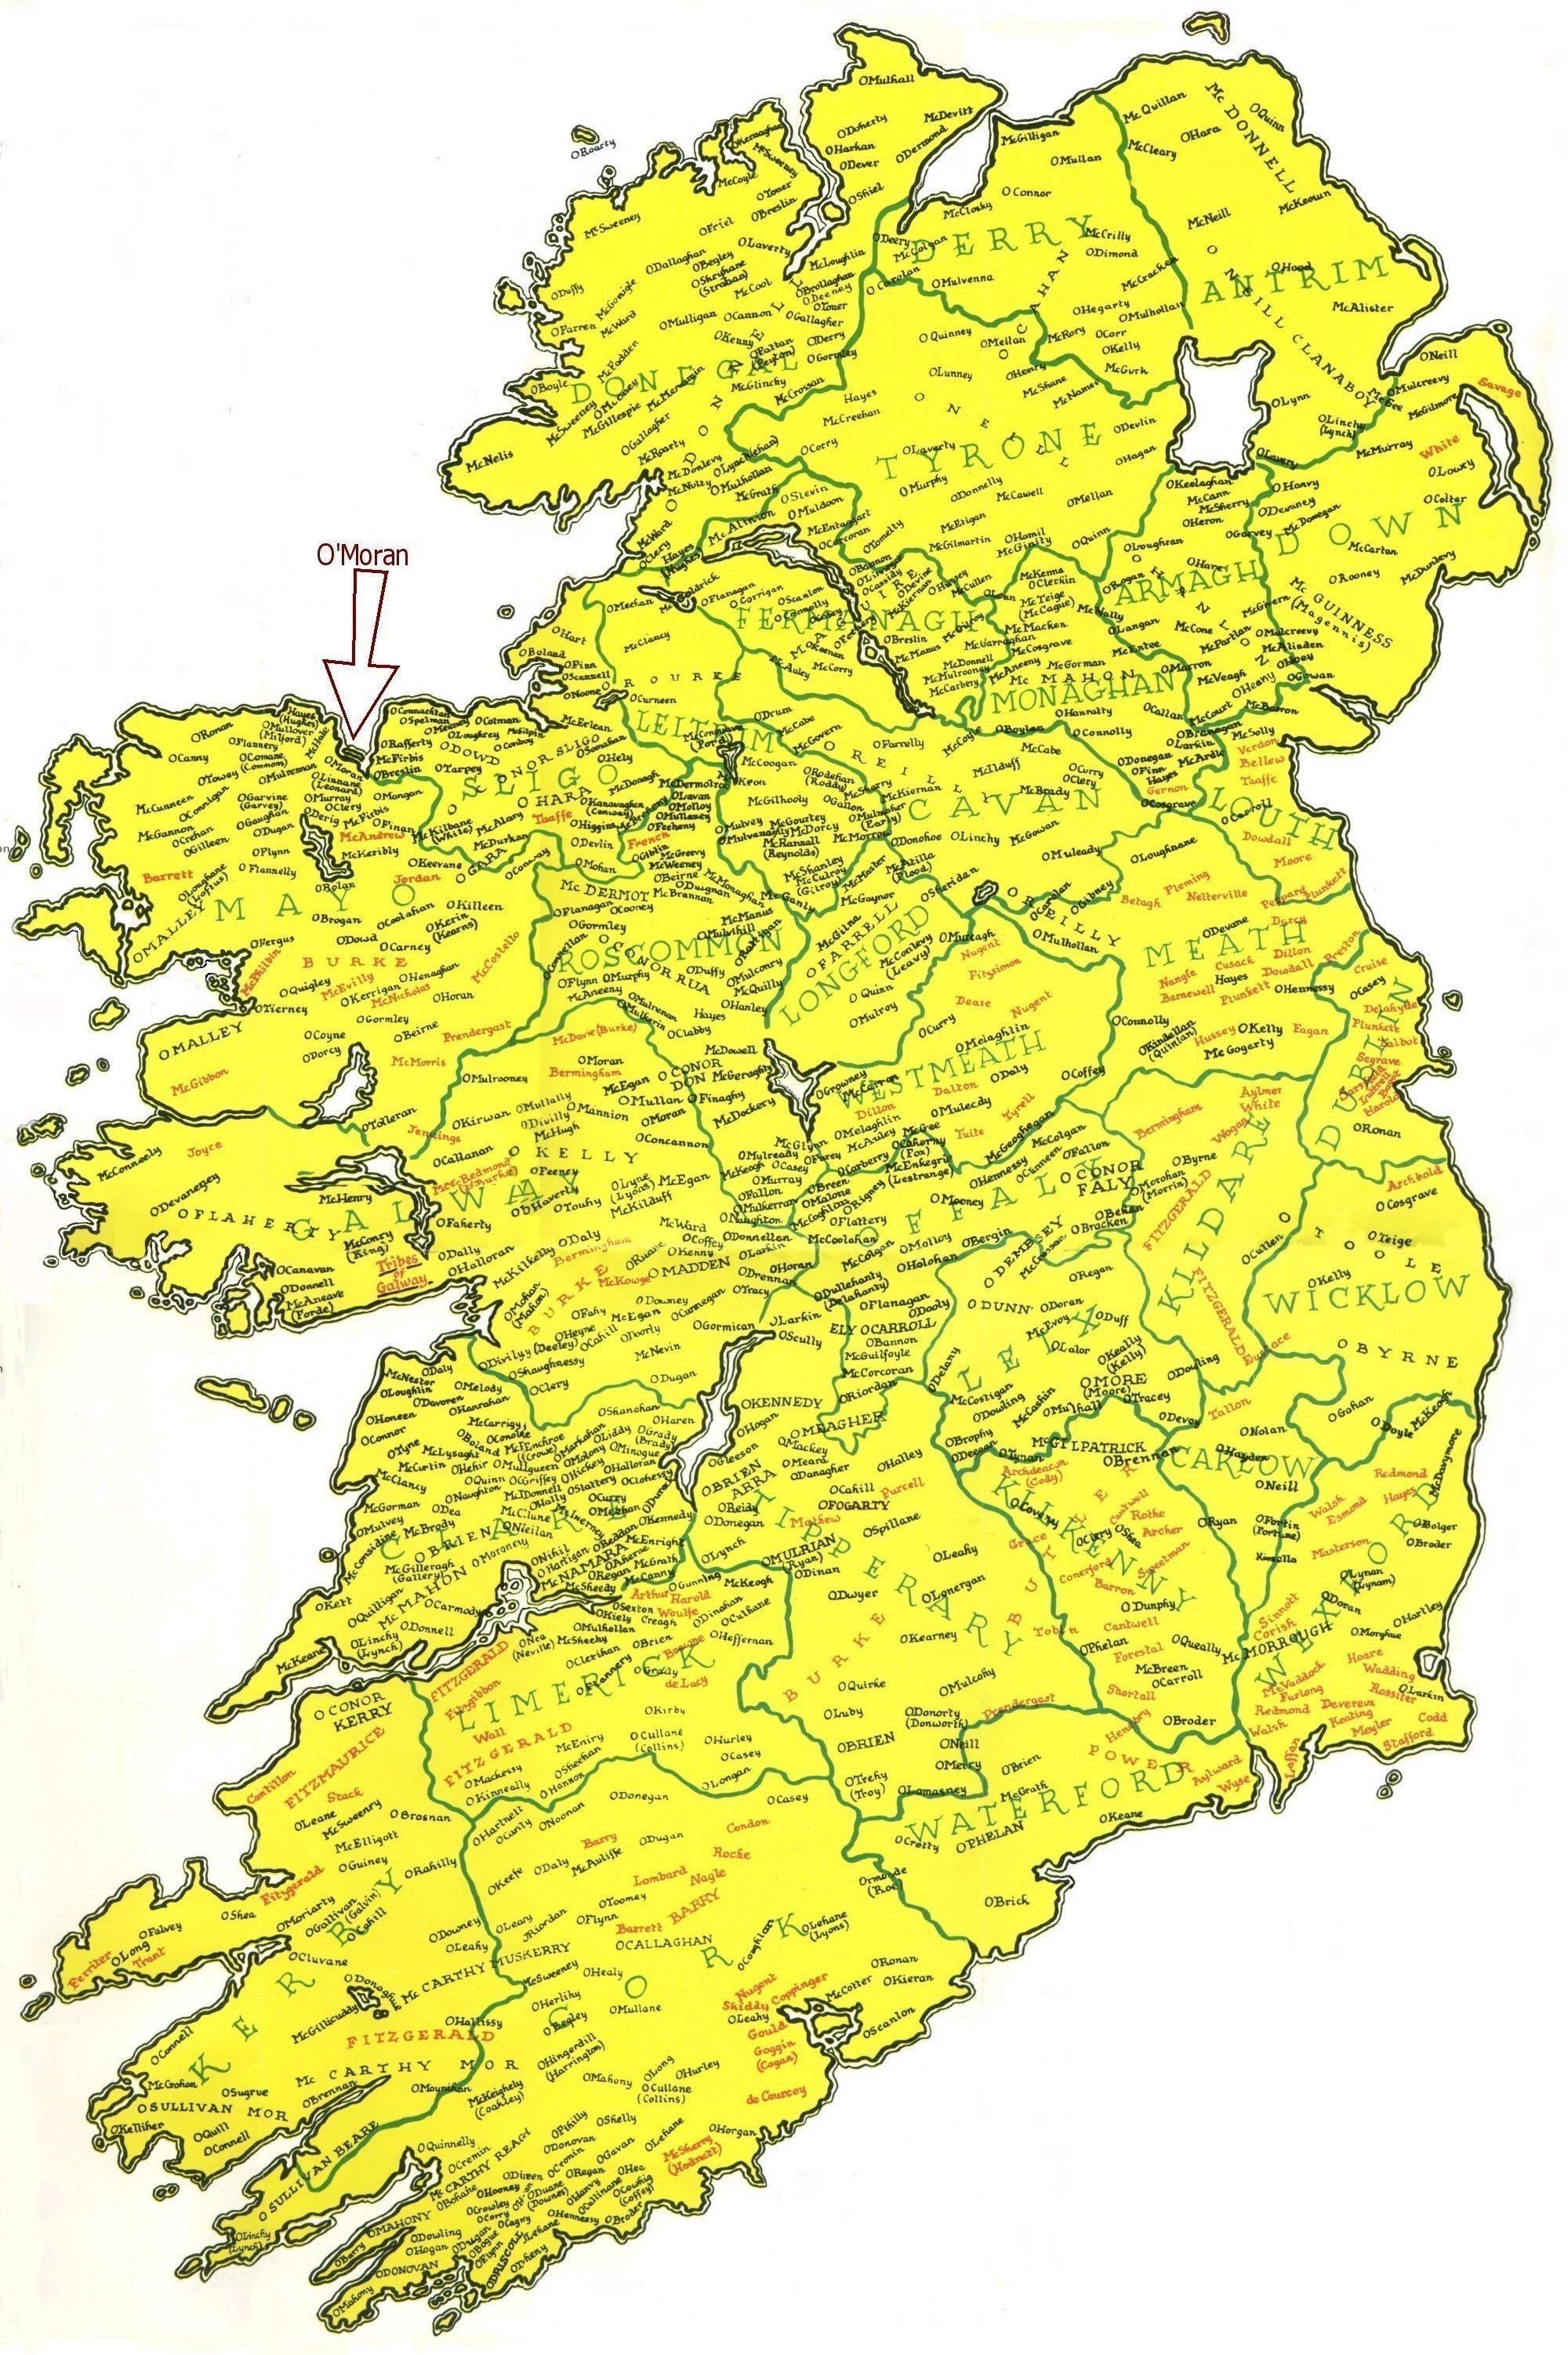 Location Of Irish Family Names Also Seeking ORourke Its Spellings Fitzpatrick